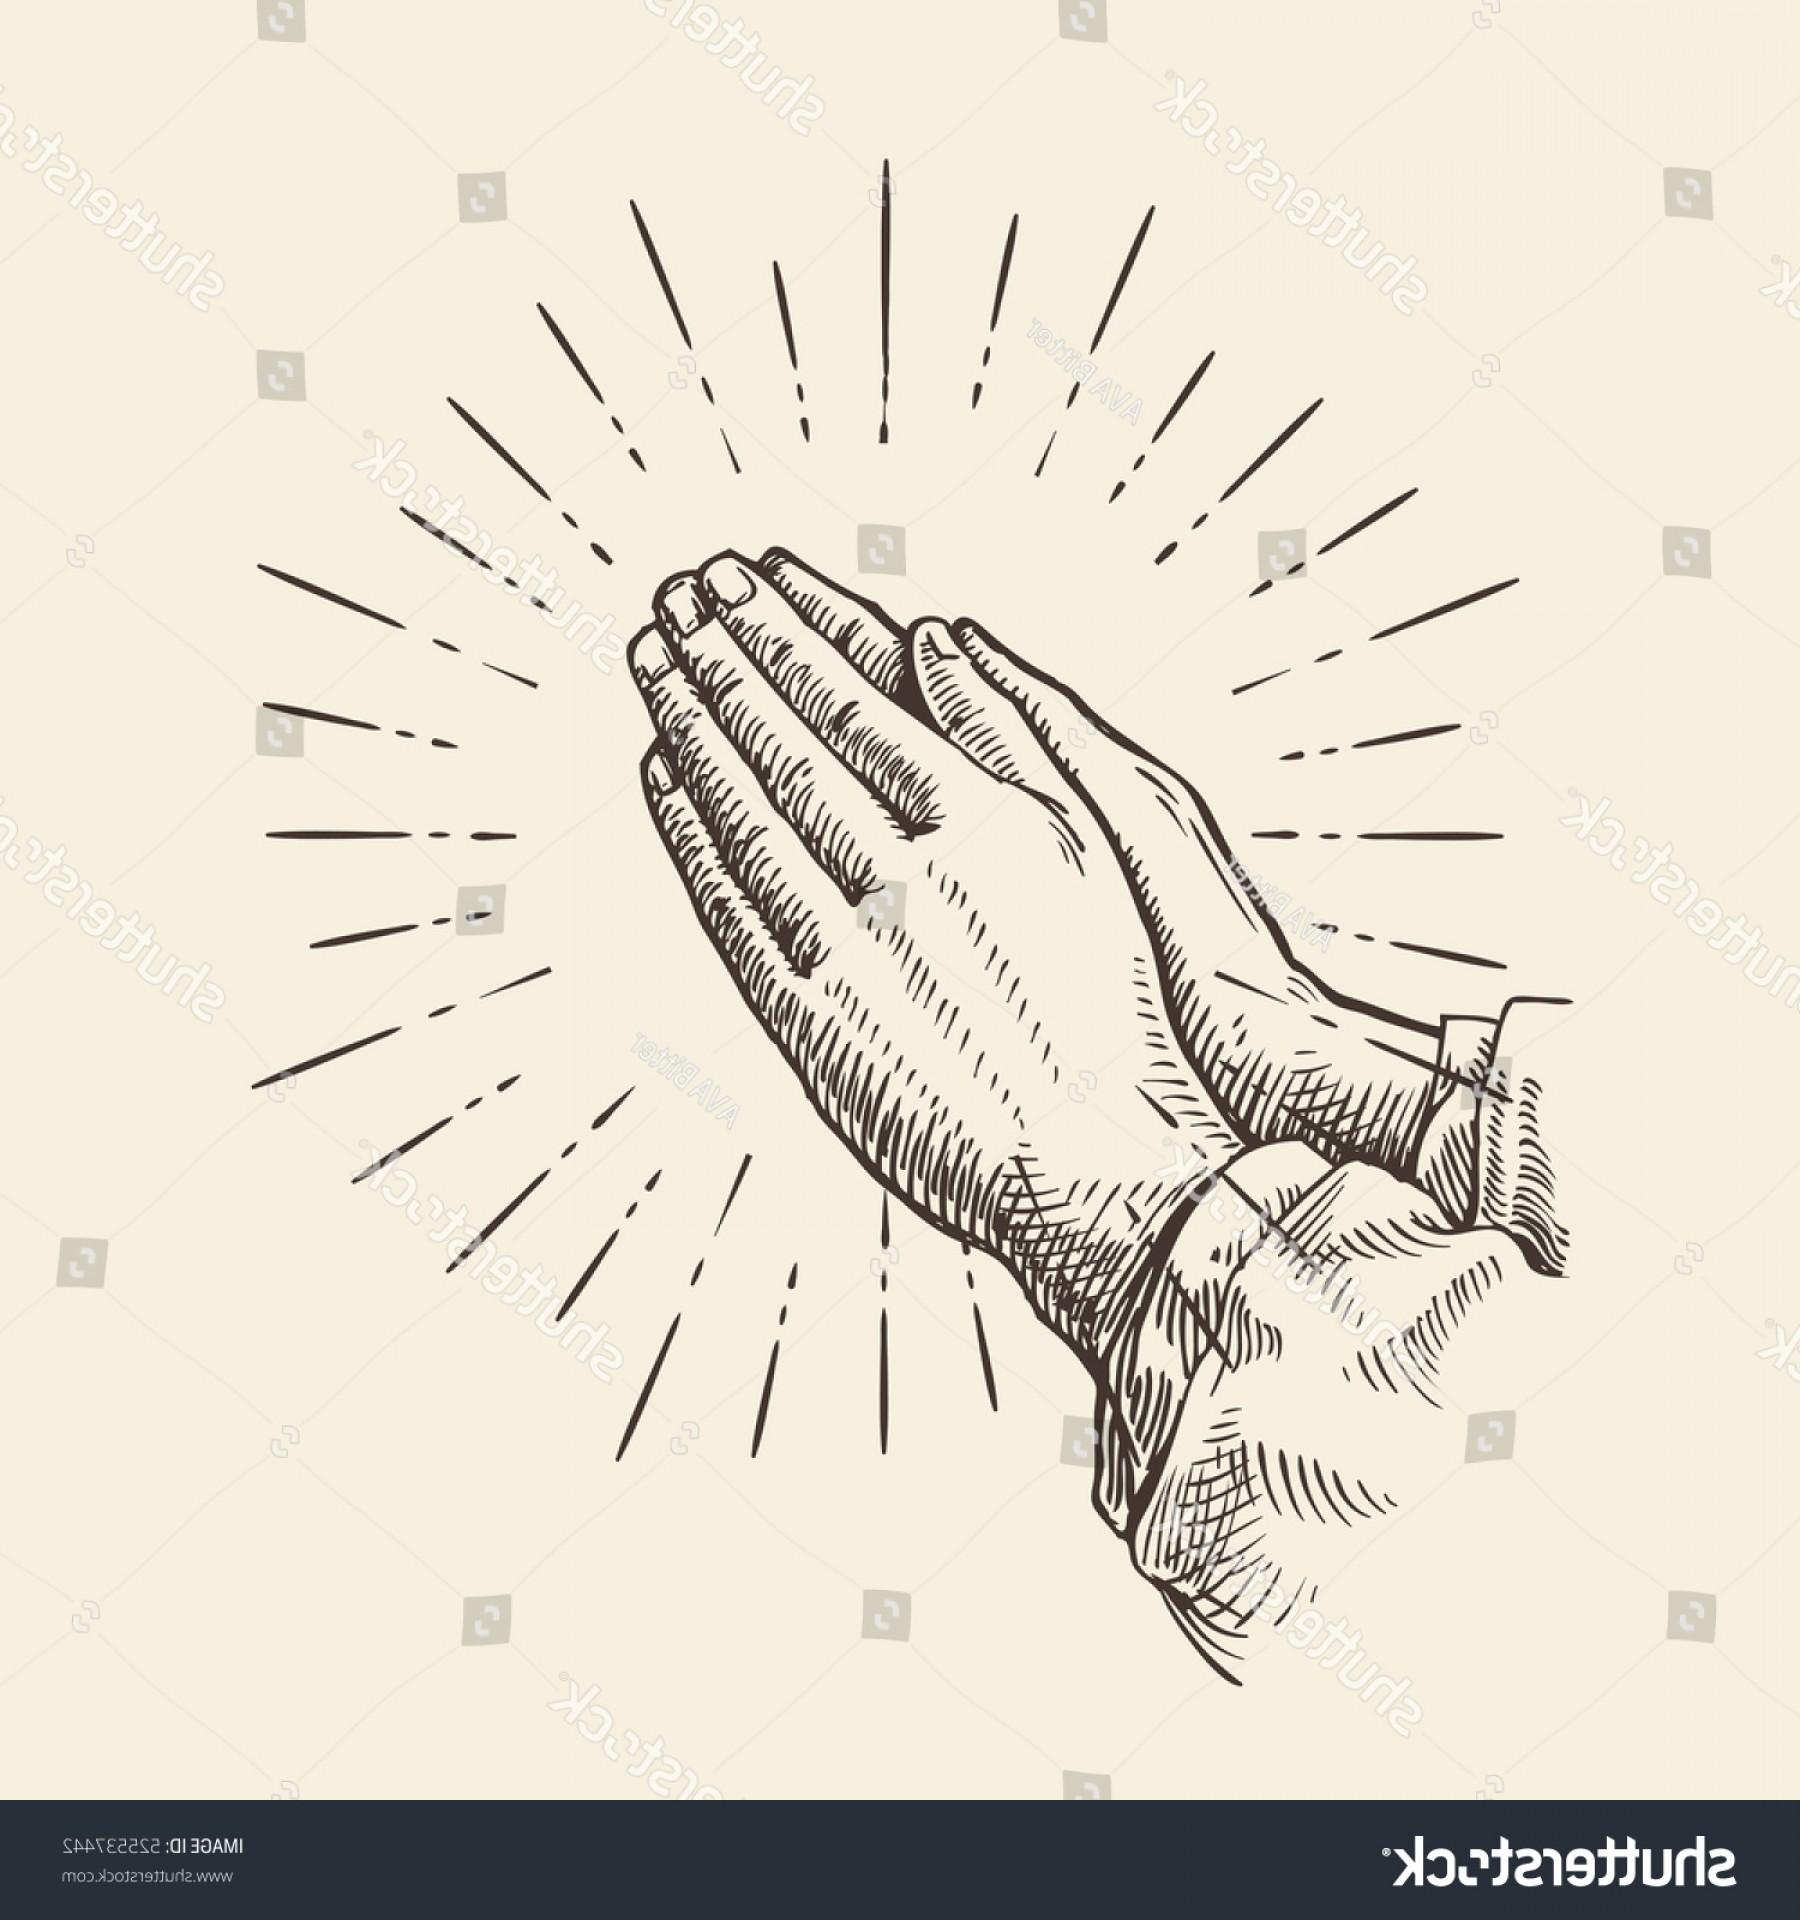 Praying Hands Vectors Shutterstock: Praying Hands Sketch Vector Illustration